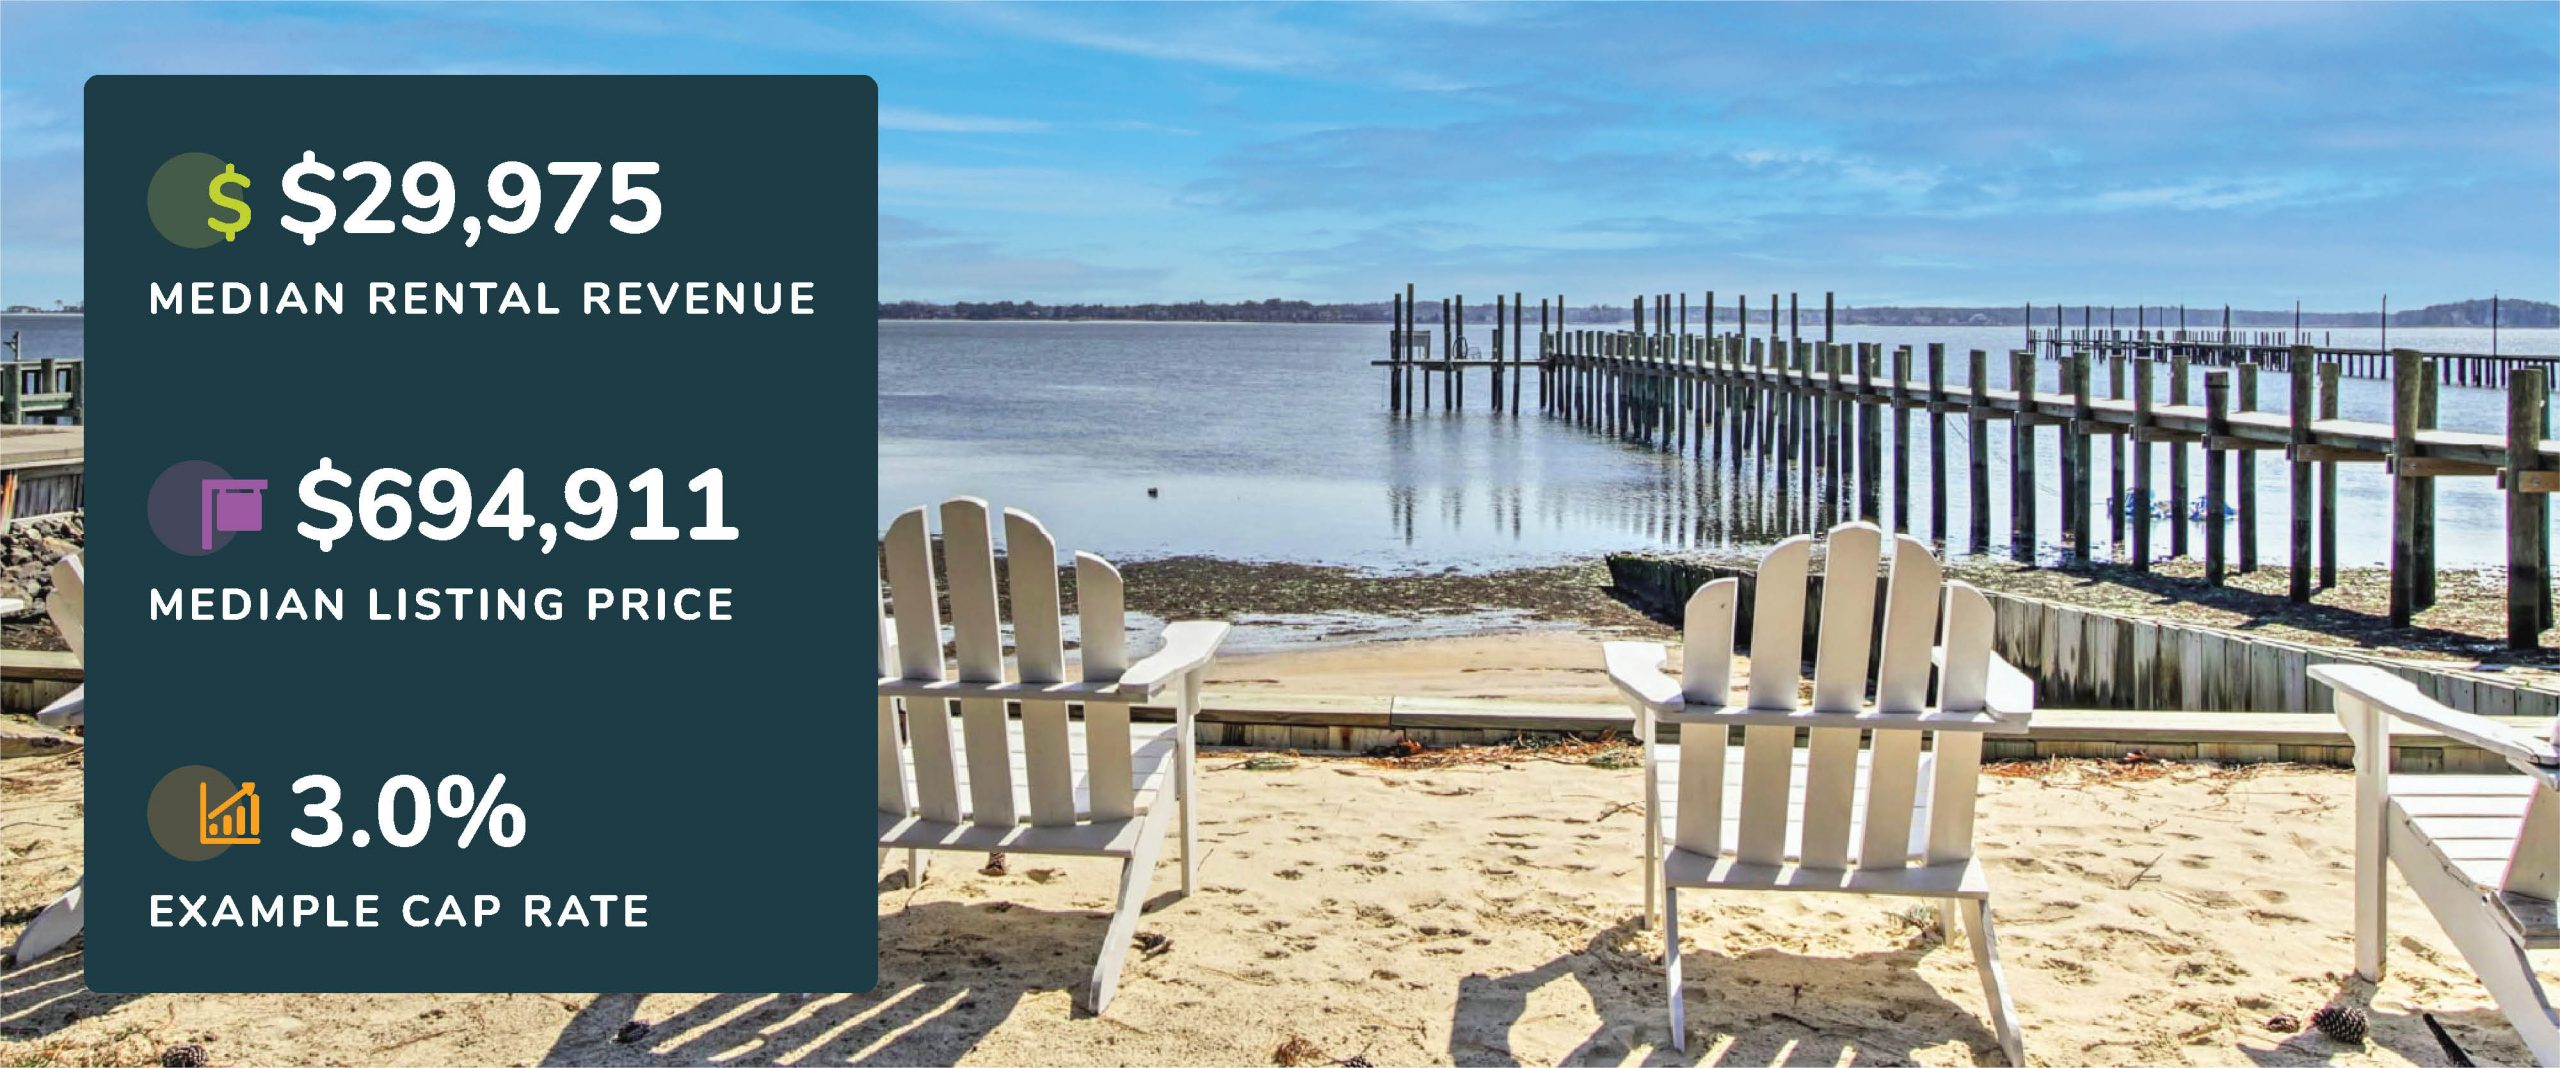 Graphic showing Bethany Beach, Delaware median rental revenue, listing price, and example cap rate with a picture of a beach and waterfront views